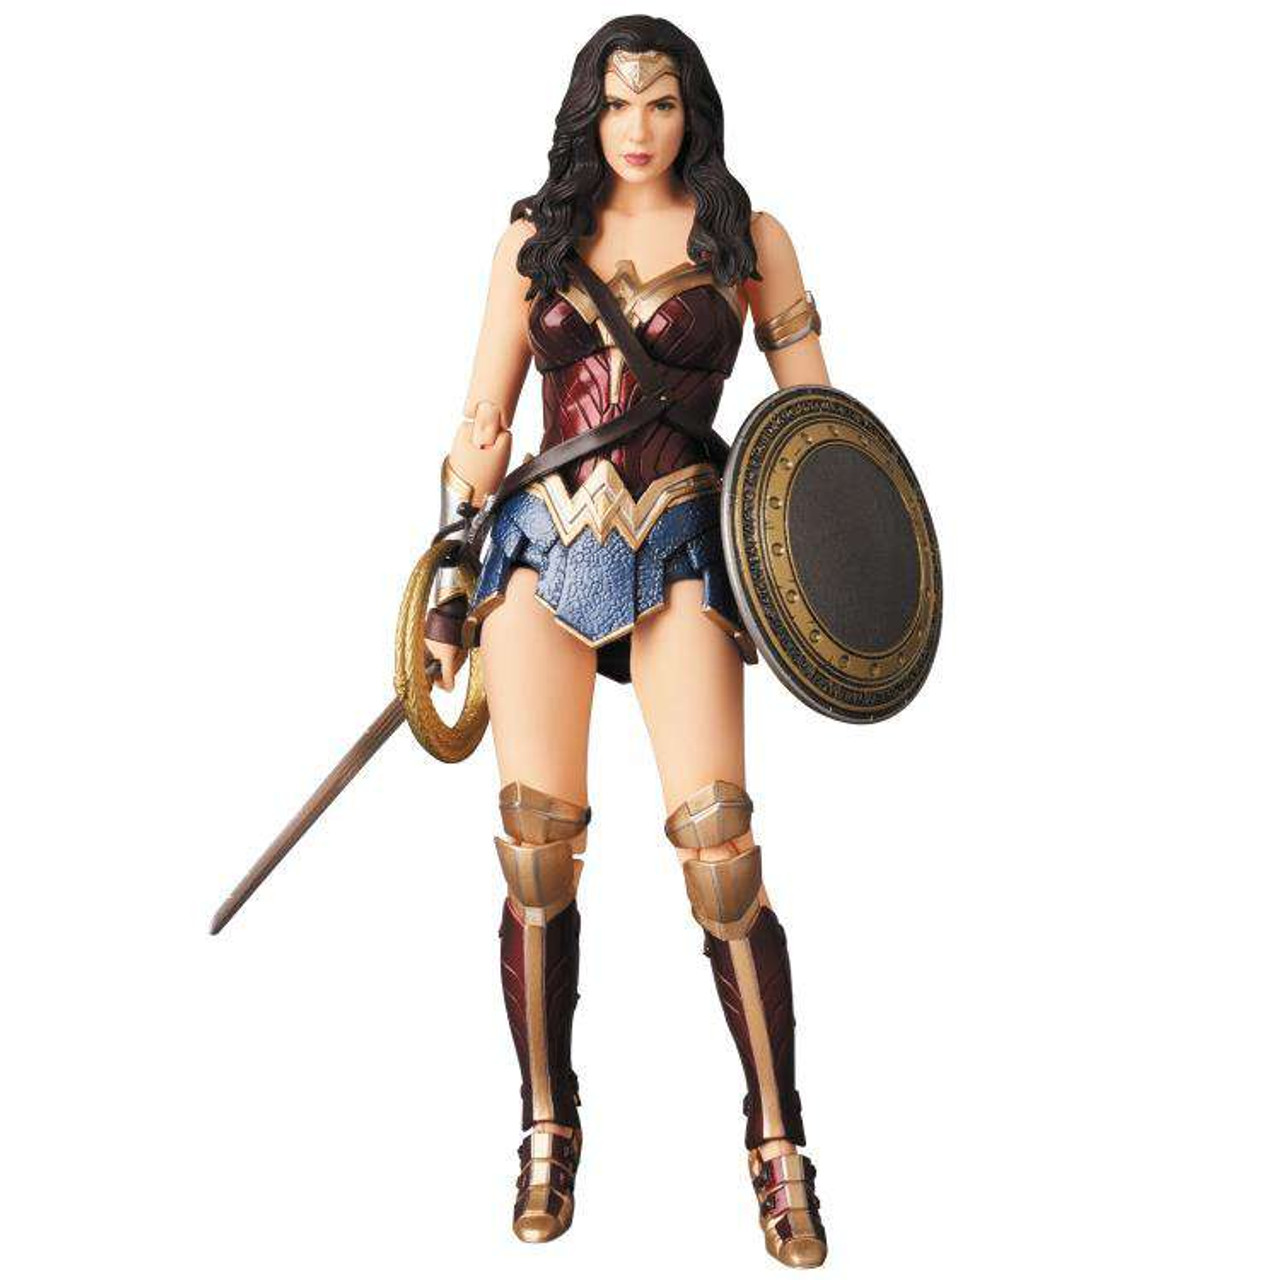 7875f19e5b8 DC Justice League MAFEX Wonder Woman 6 Action Figure 060 Justice League  Medicom Toys - ToyWiz